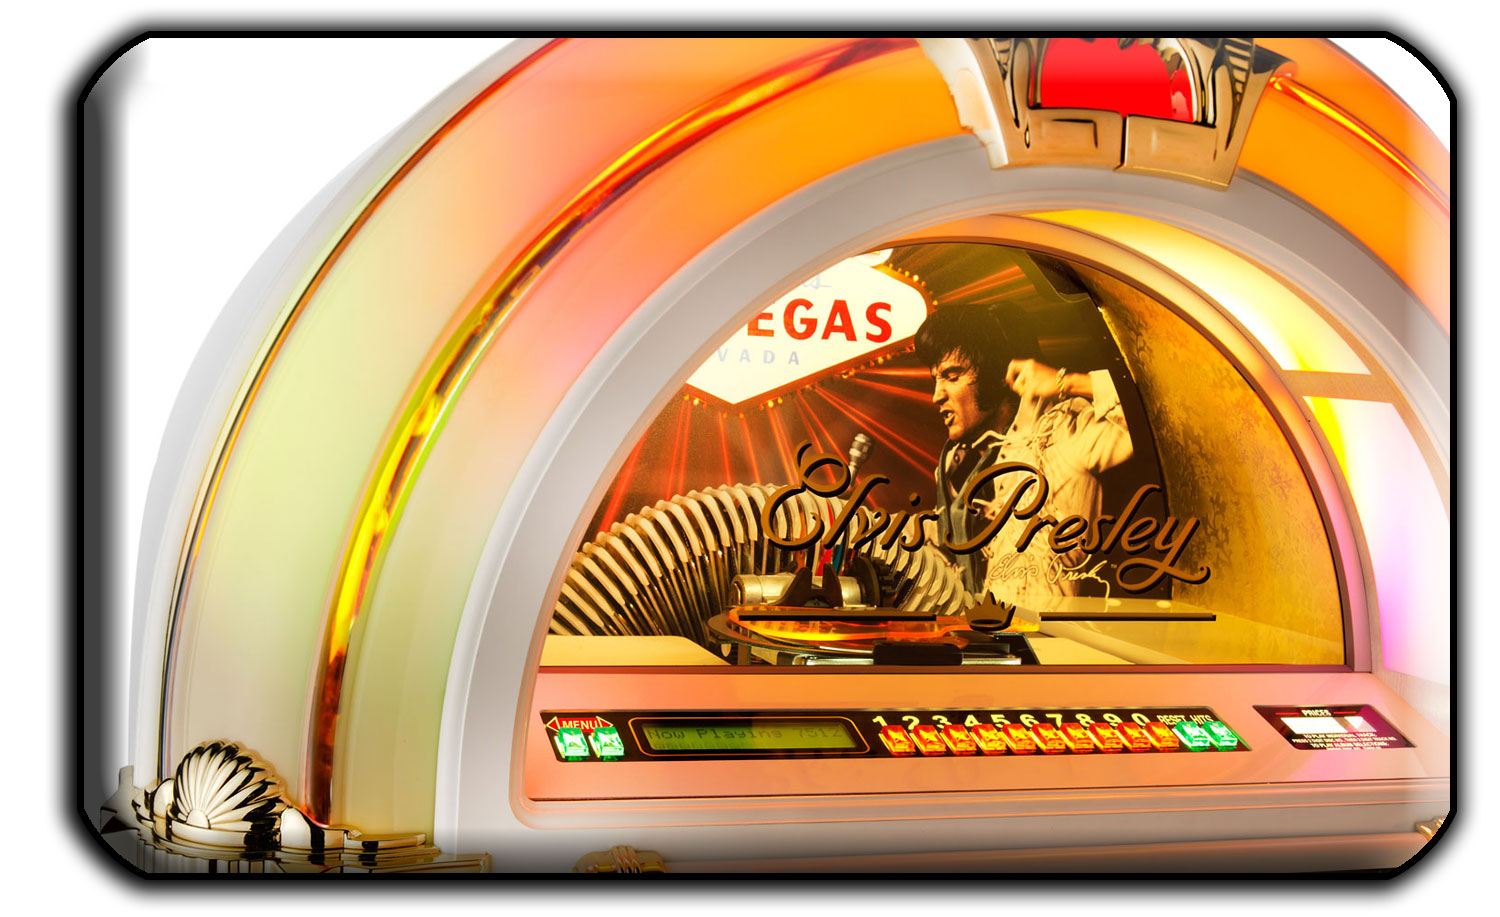 Detail of the Elvis jukebox's CD window.